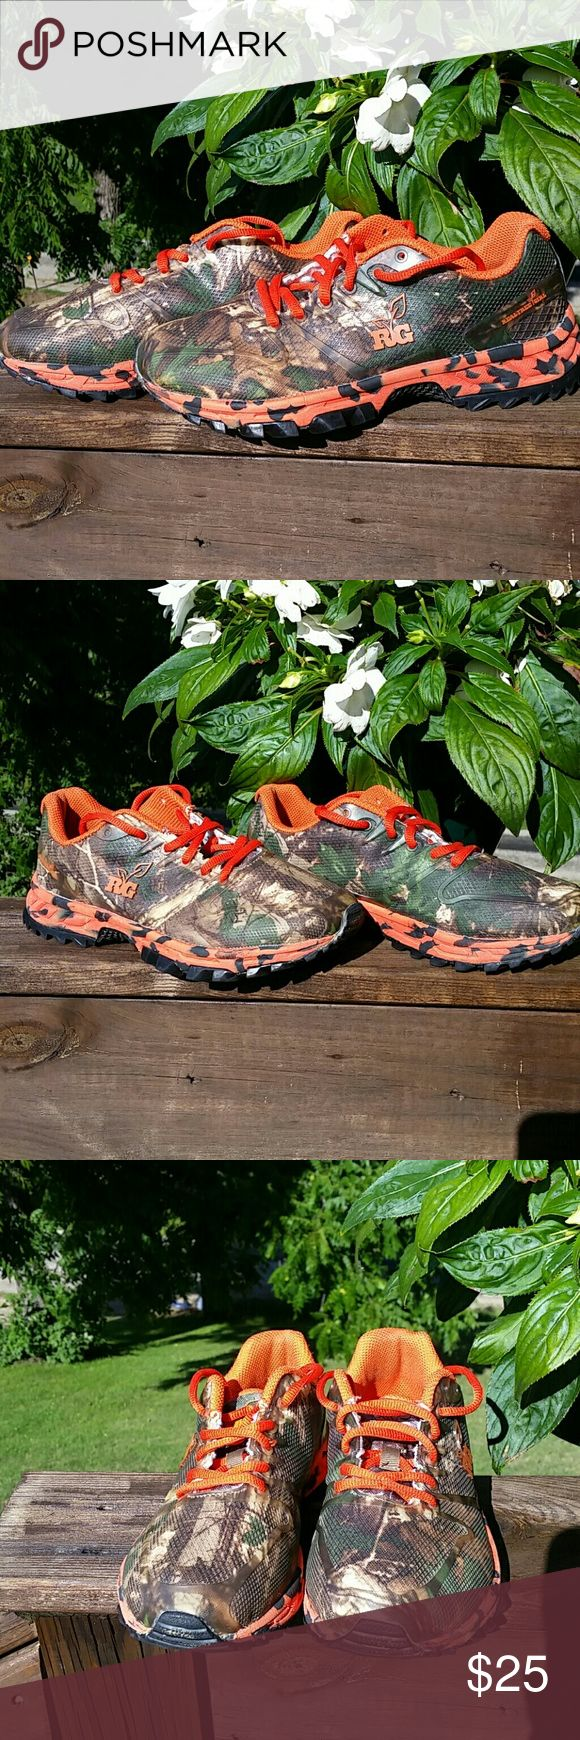 Realtree Girl Tennis Shoes Realtree Girl shoes! These shoes look SHARP. Camouflage detail with bright orange strings, inside, and along the bottom. Very comfortable. Only wore once to go hiking. Great non-slip tread. Realtree Shoes